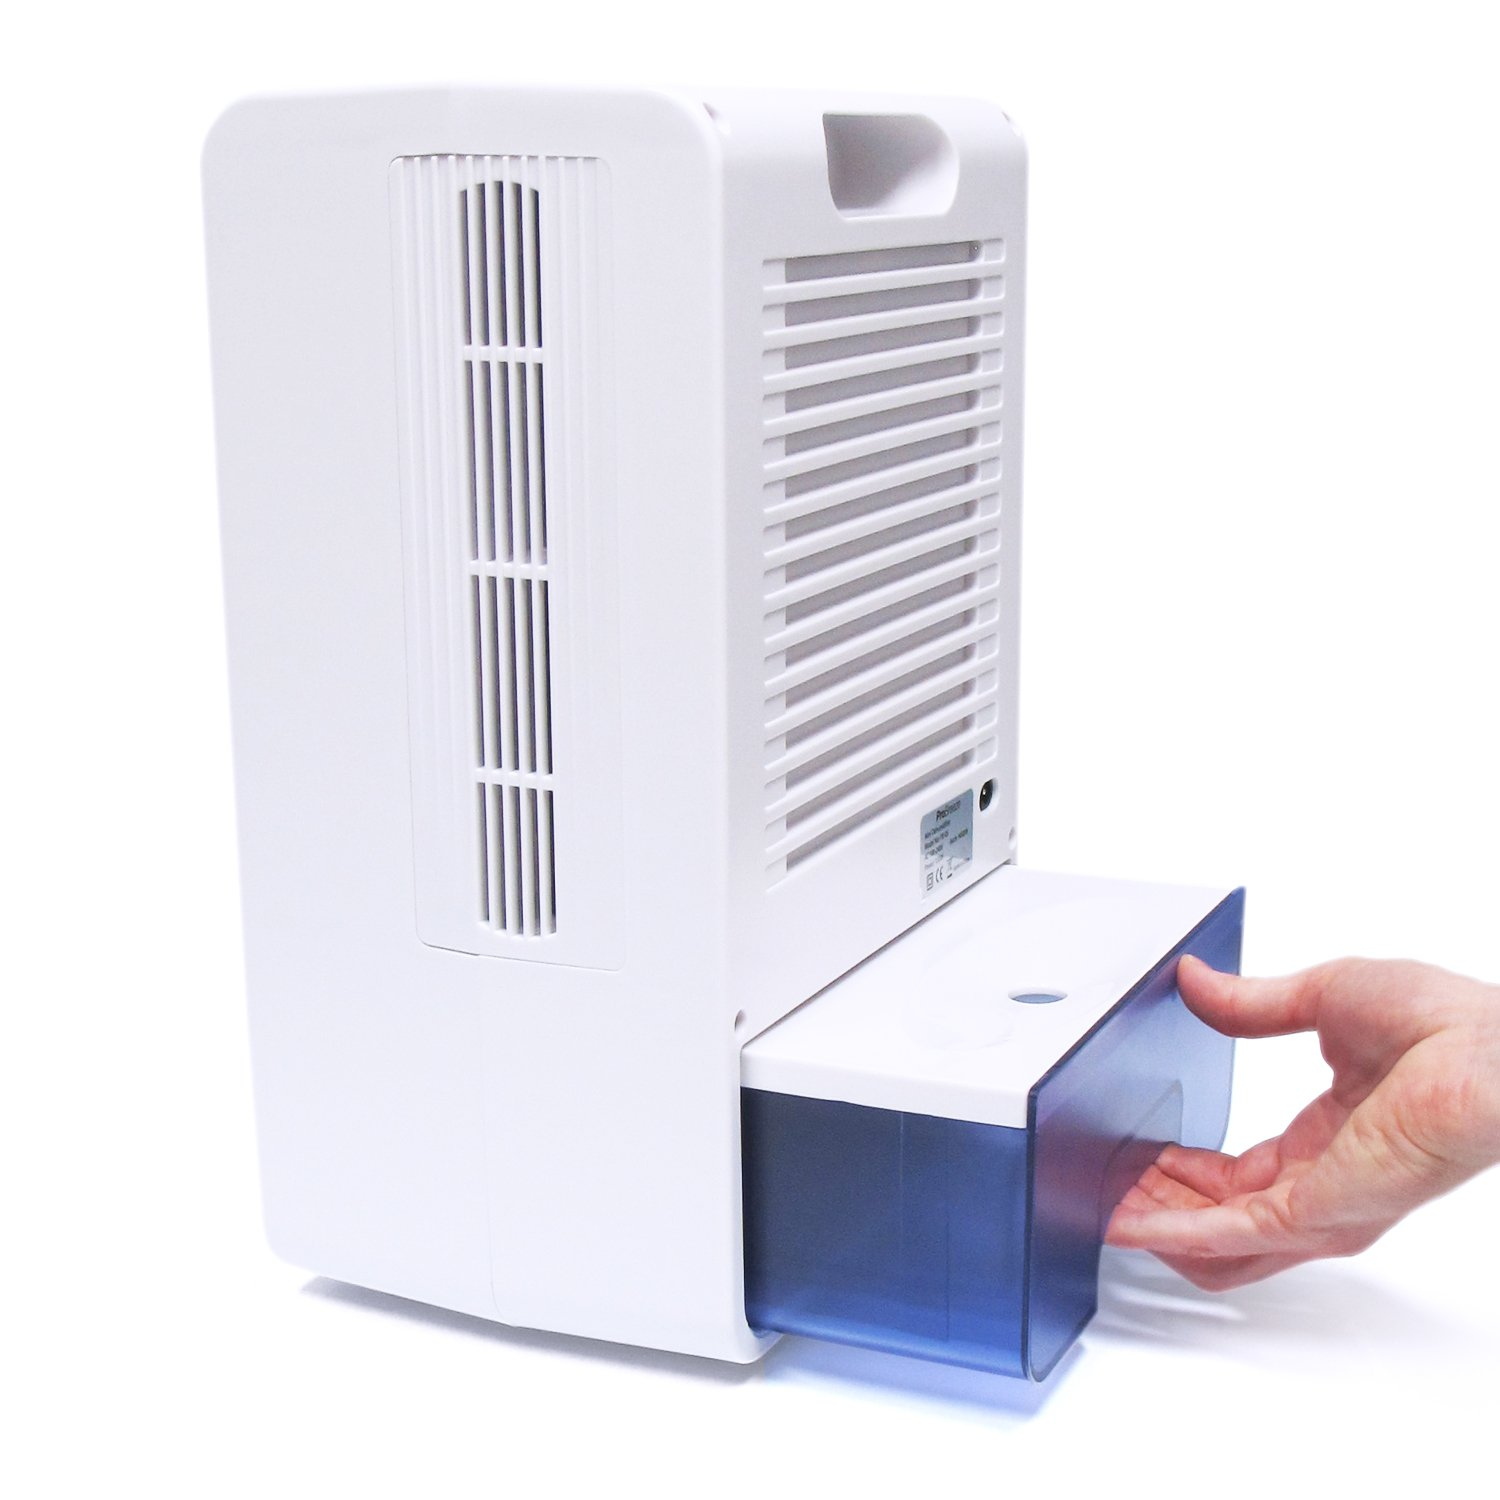 Pro Breeze Electric Mini Dehumidifier, 5 Pint, 5500 Cubic Feet - Perfect for Attics, Bedrooms, Bathrooms & Closets | Ultra Quiet Thermo-Electric Technology with Built in Humidistat by Pro Breeze (Image #3)